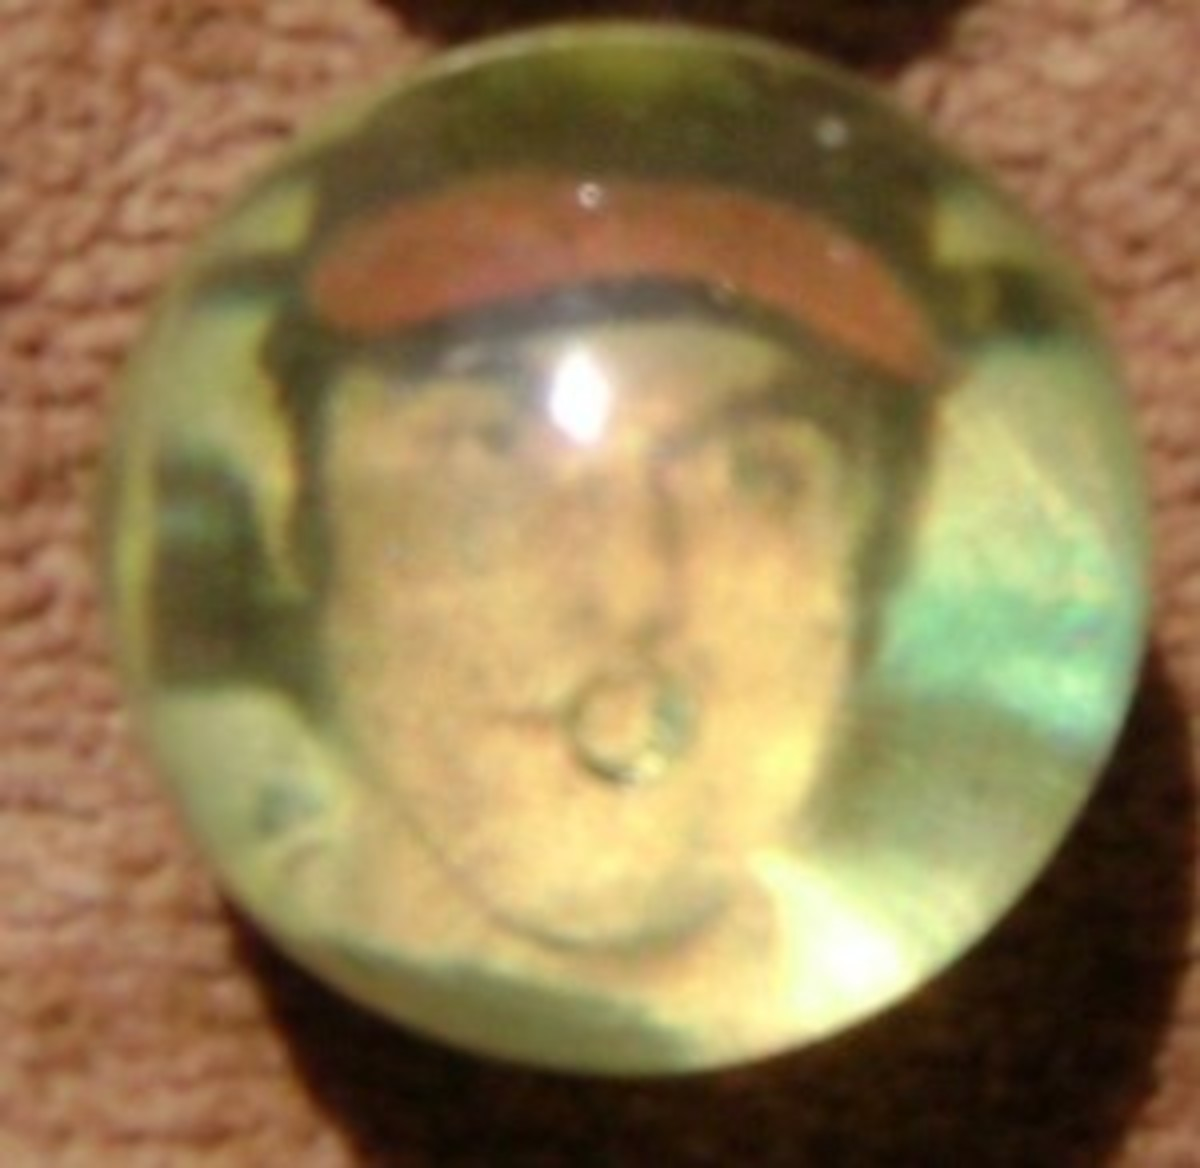 Like a cloudy crystal ball, an image of a ballplayer appears.